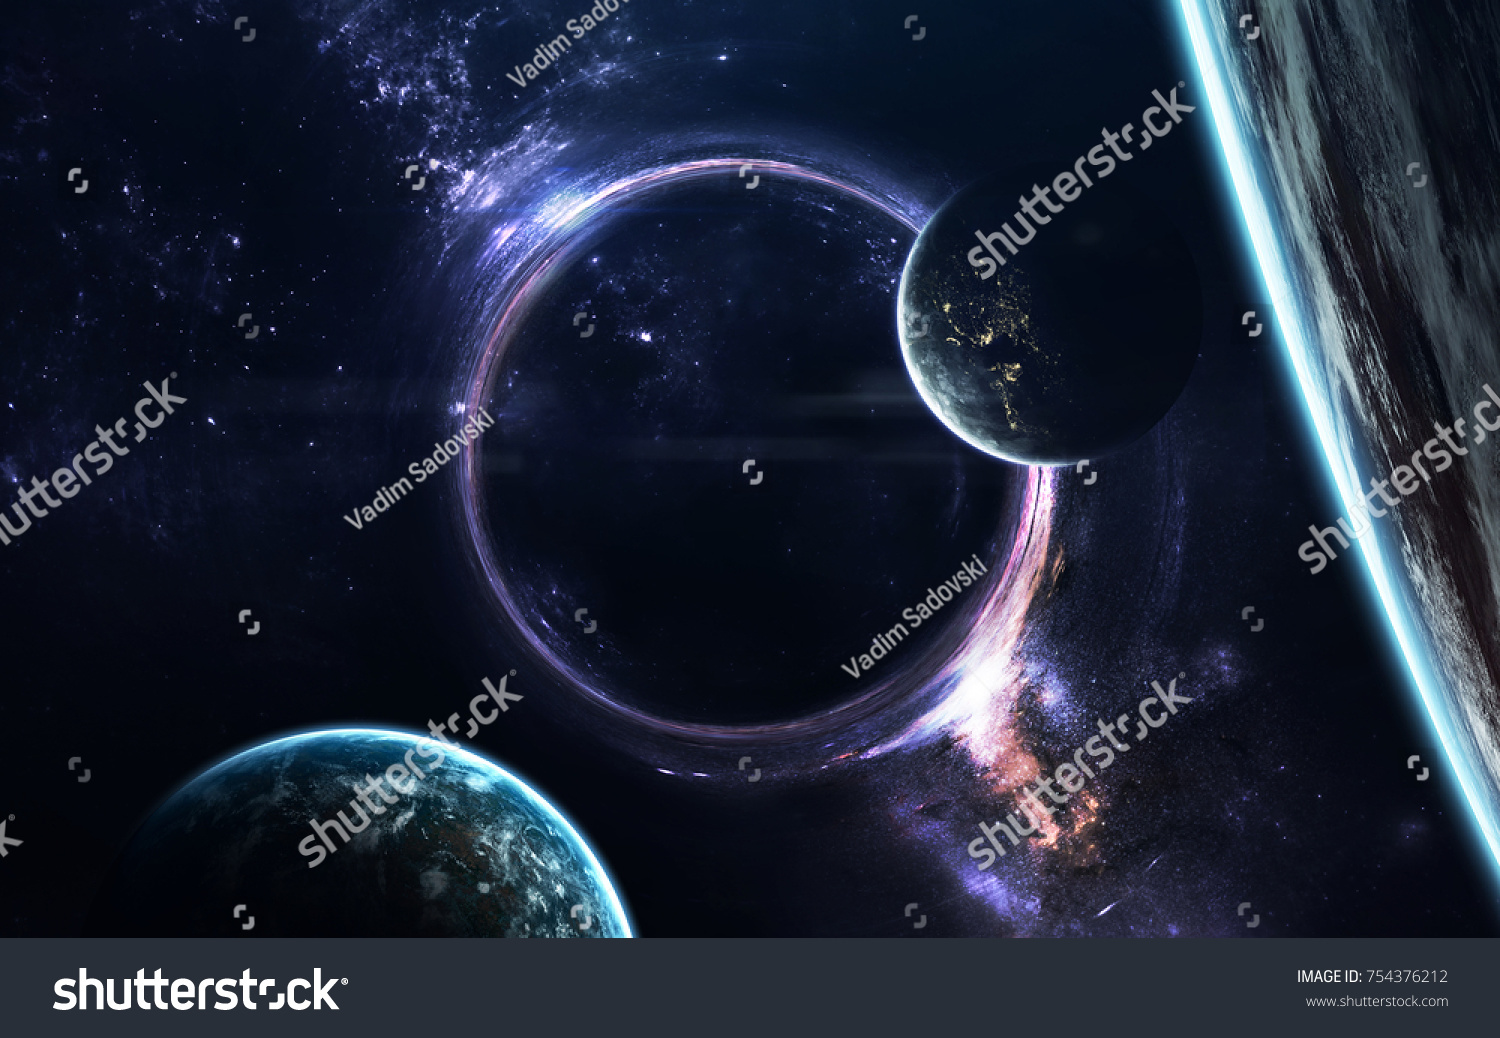 black hole science fiction wallpaper elements stock photo & image